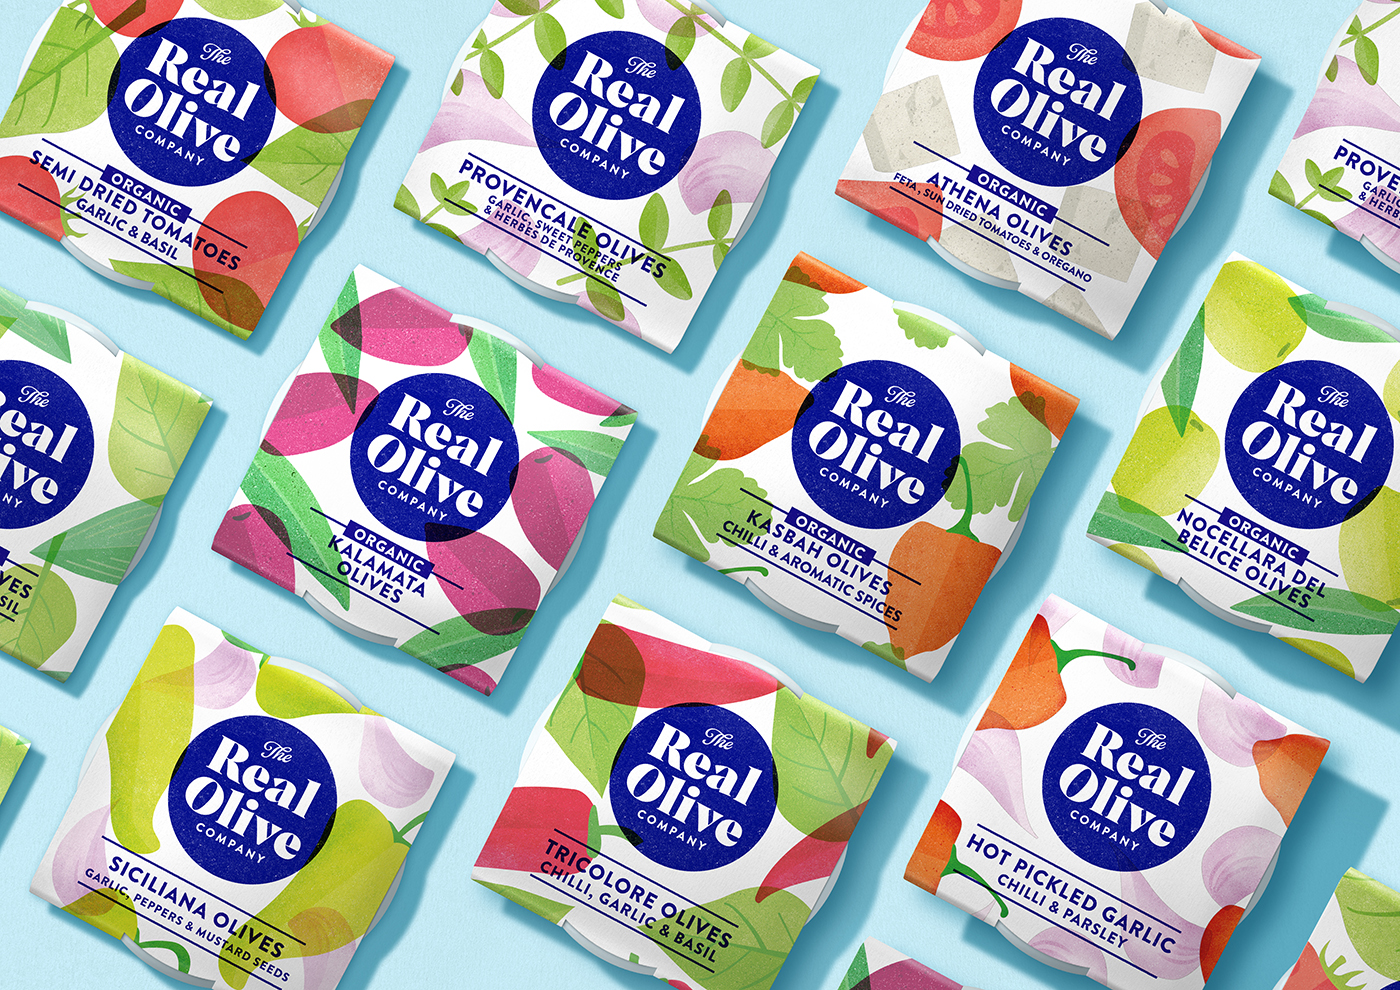 The Space Creative Rebrands The Real Olive Company